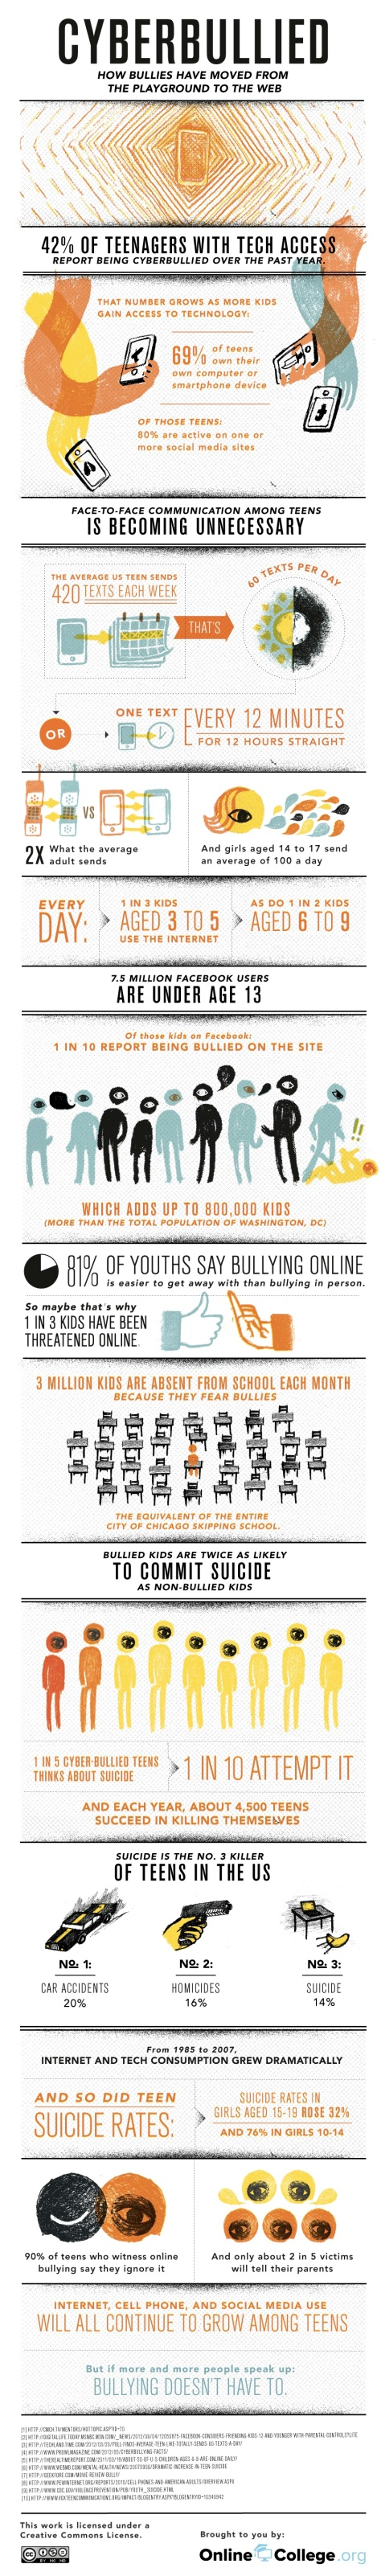 Cyber Bullying Scourge Of The Internet